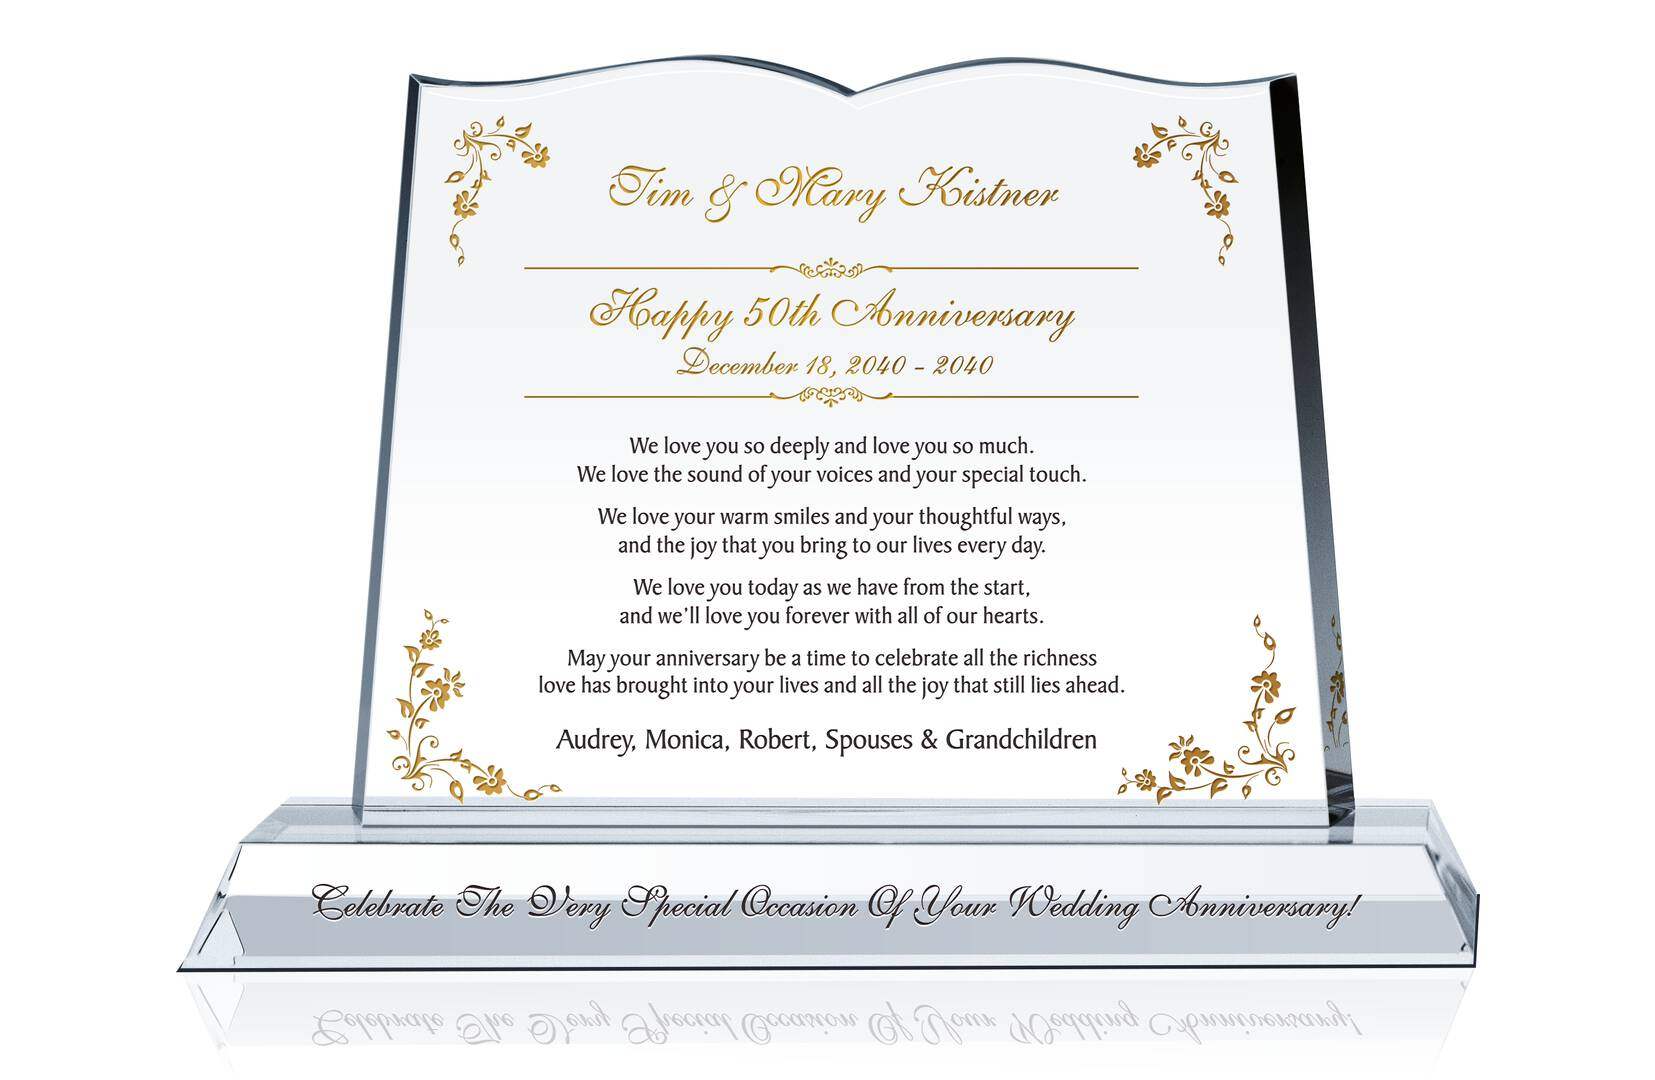 Gifts For Wedding Anniversary For Couple: 50th Wedding Anniversary Gift For Couple